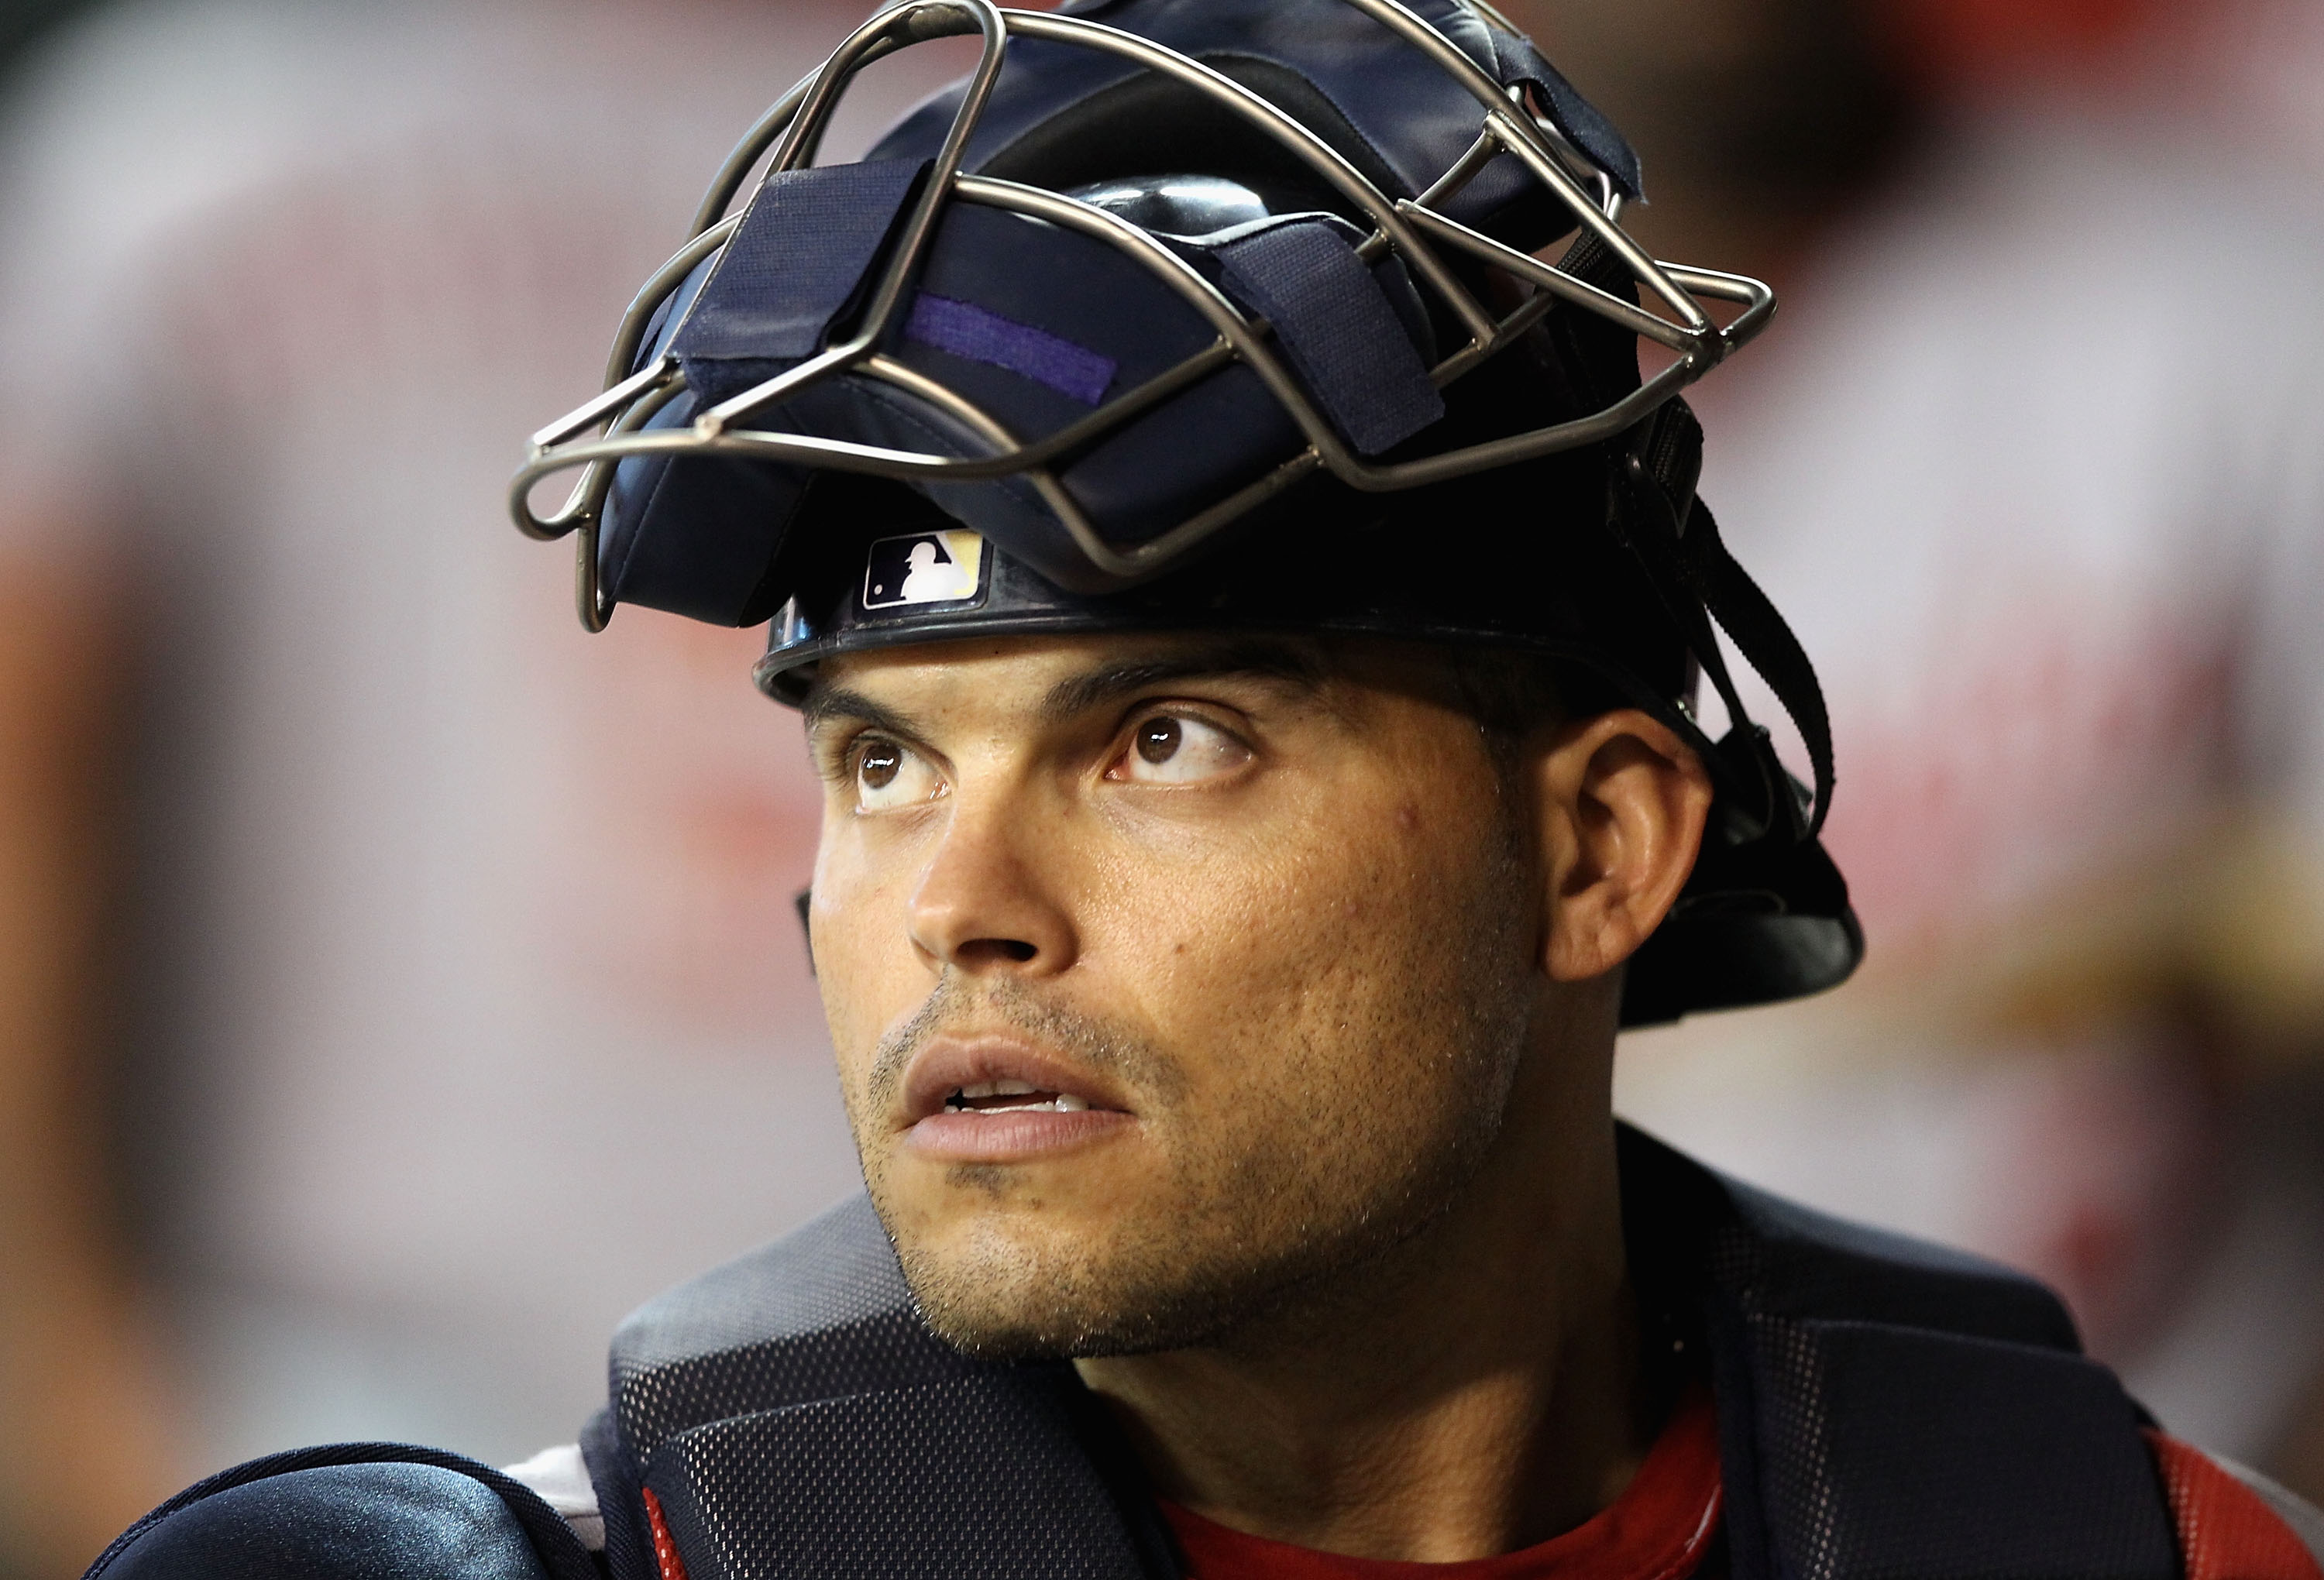 PHOENIX - AUGUST 04:  Catcher Ivan Rodriguez #7 of the Washington Nationals in the dugout during the Major League Baseball game against the Arizona Diamondbacks at Chase Field on August 4, 2010 in Phoenix, Arizona.  The Nationals defeated the Diamondbacks